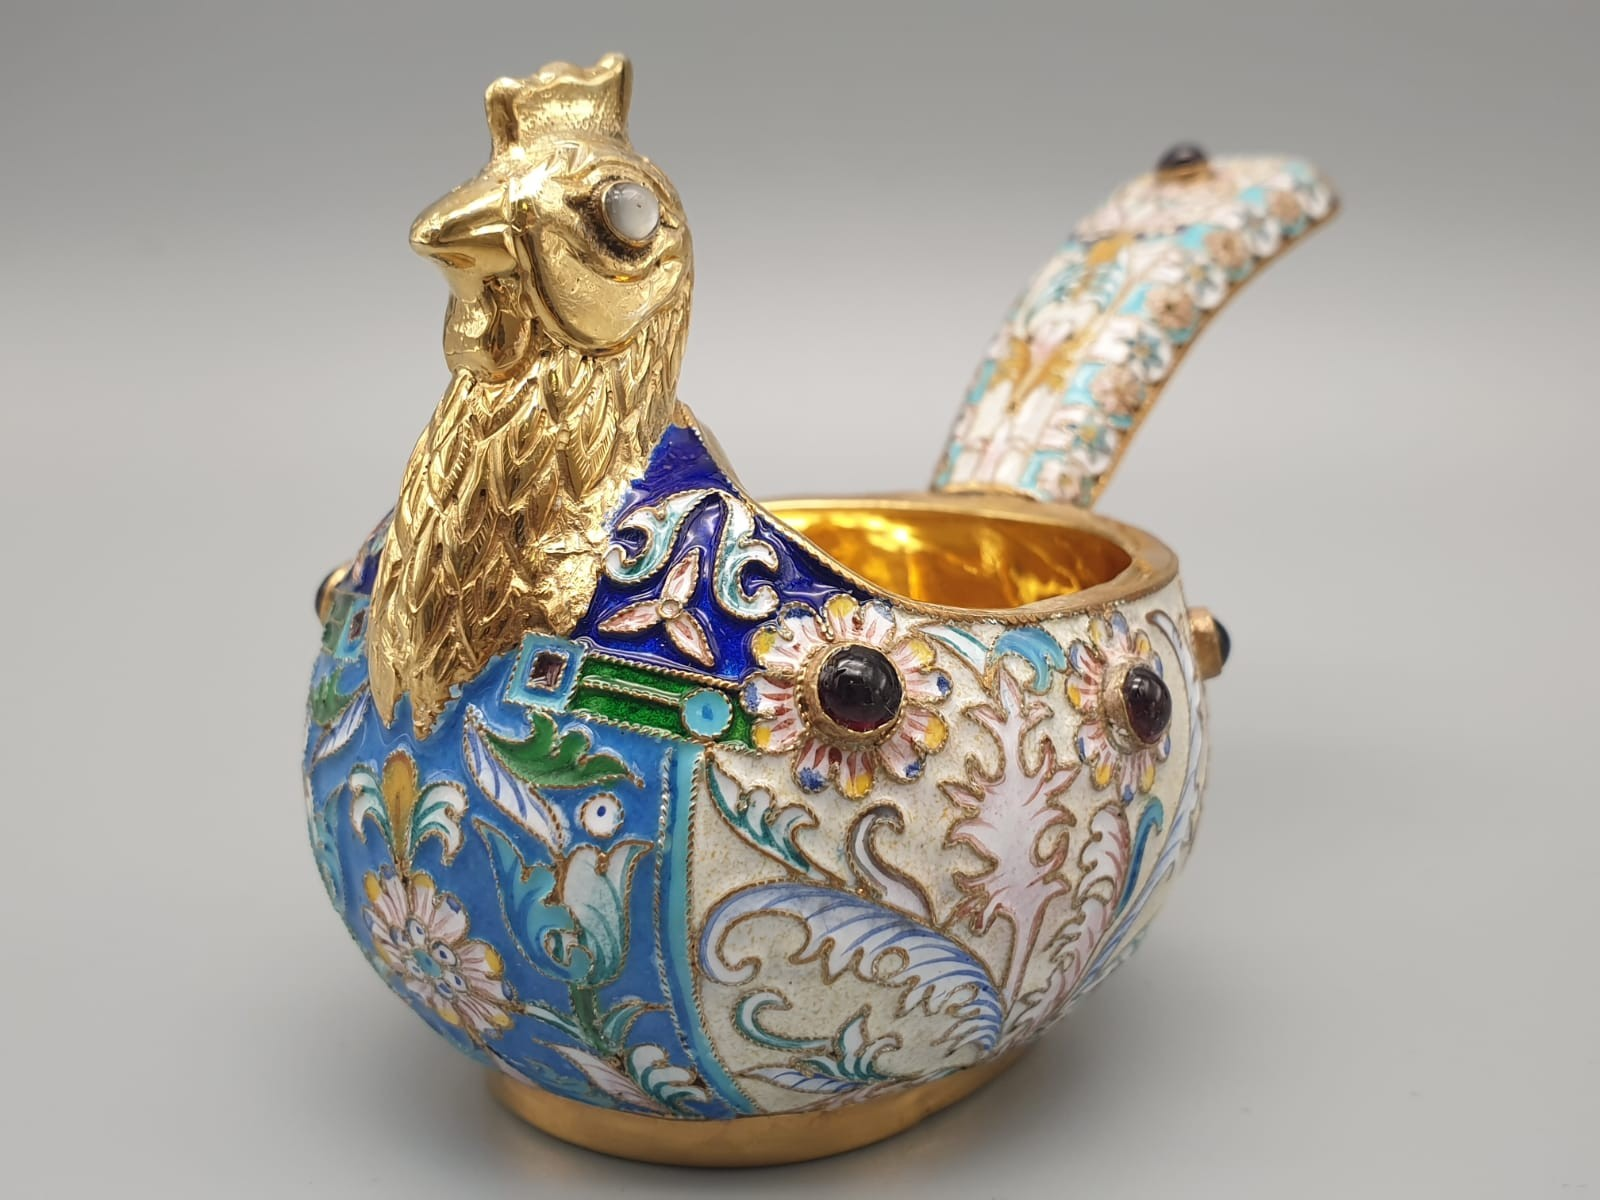 Pair of Russian 20th century silver enamel gemset kavosch bowl in the form of birds, an exquisite - Image 28 of 29